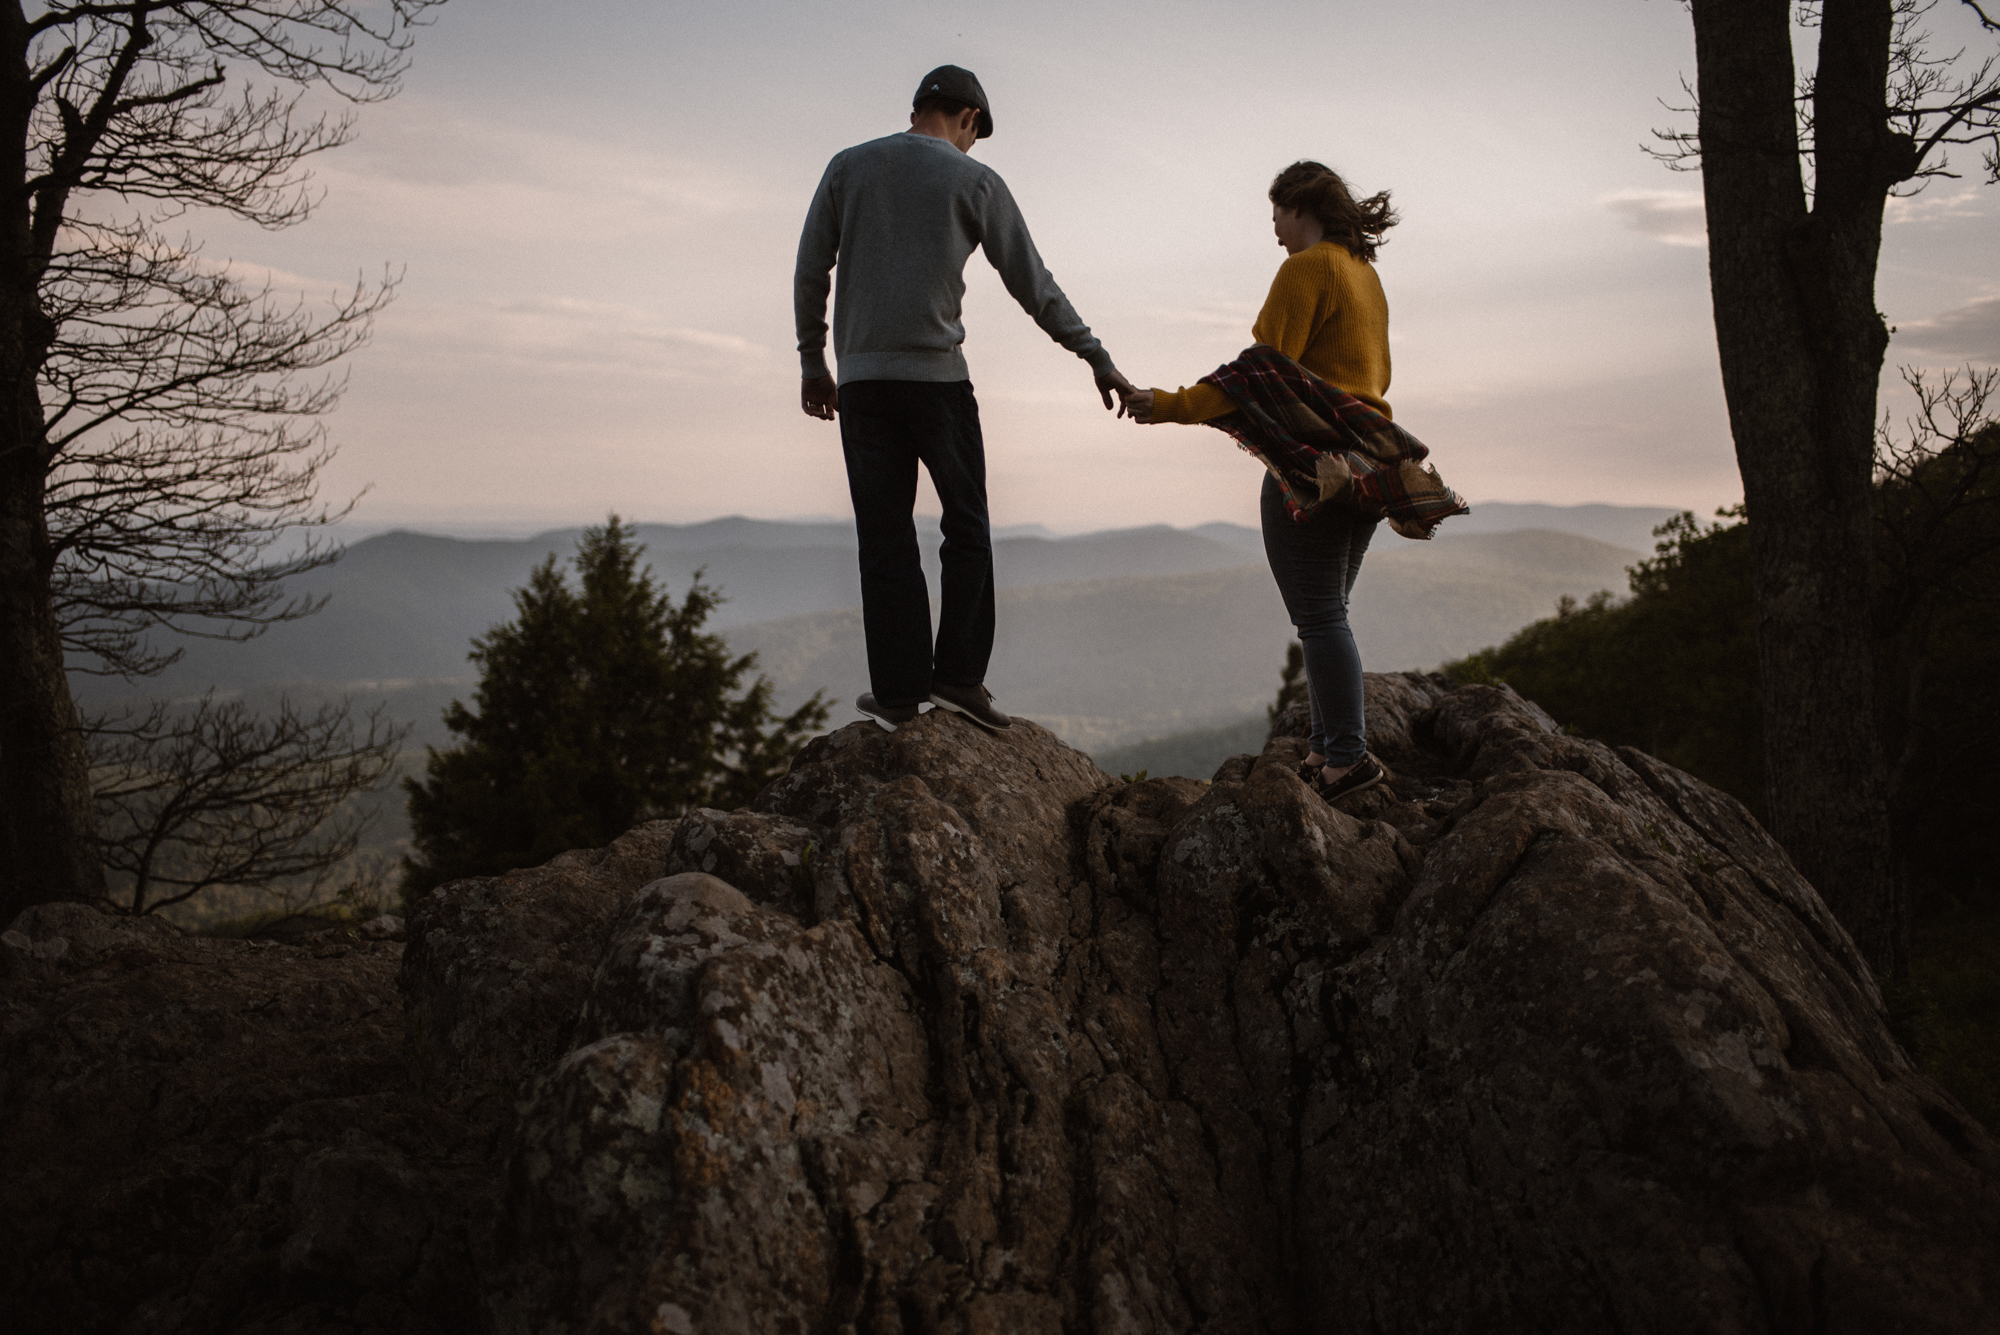 Sloane and Evan Sunrise Engagement Session in Shenandoah National Park - Things to Do in Luray Virginia - Adventurous Couple Photo Shoot White Sails Creative_26.jpg